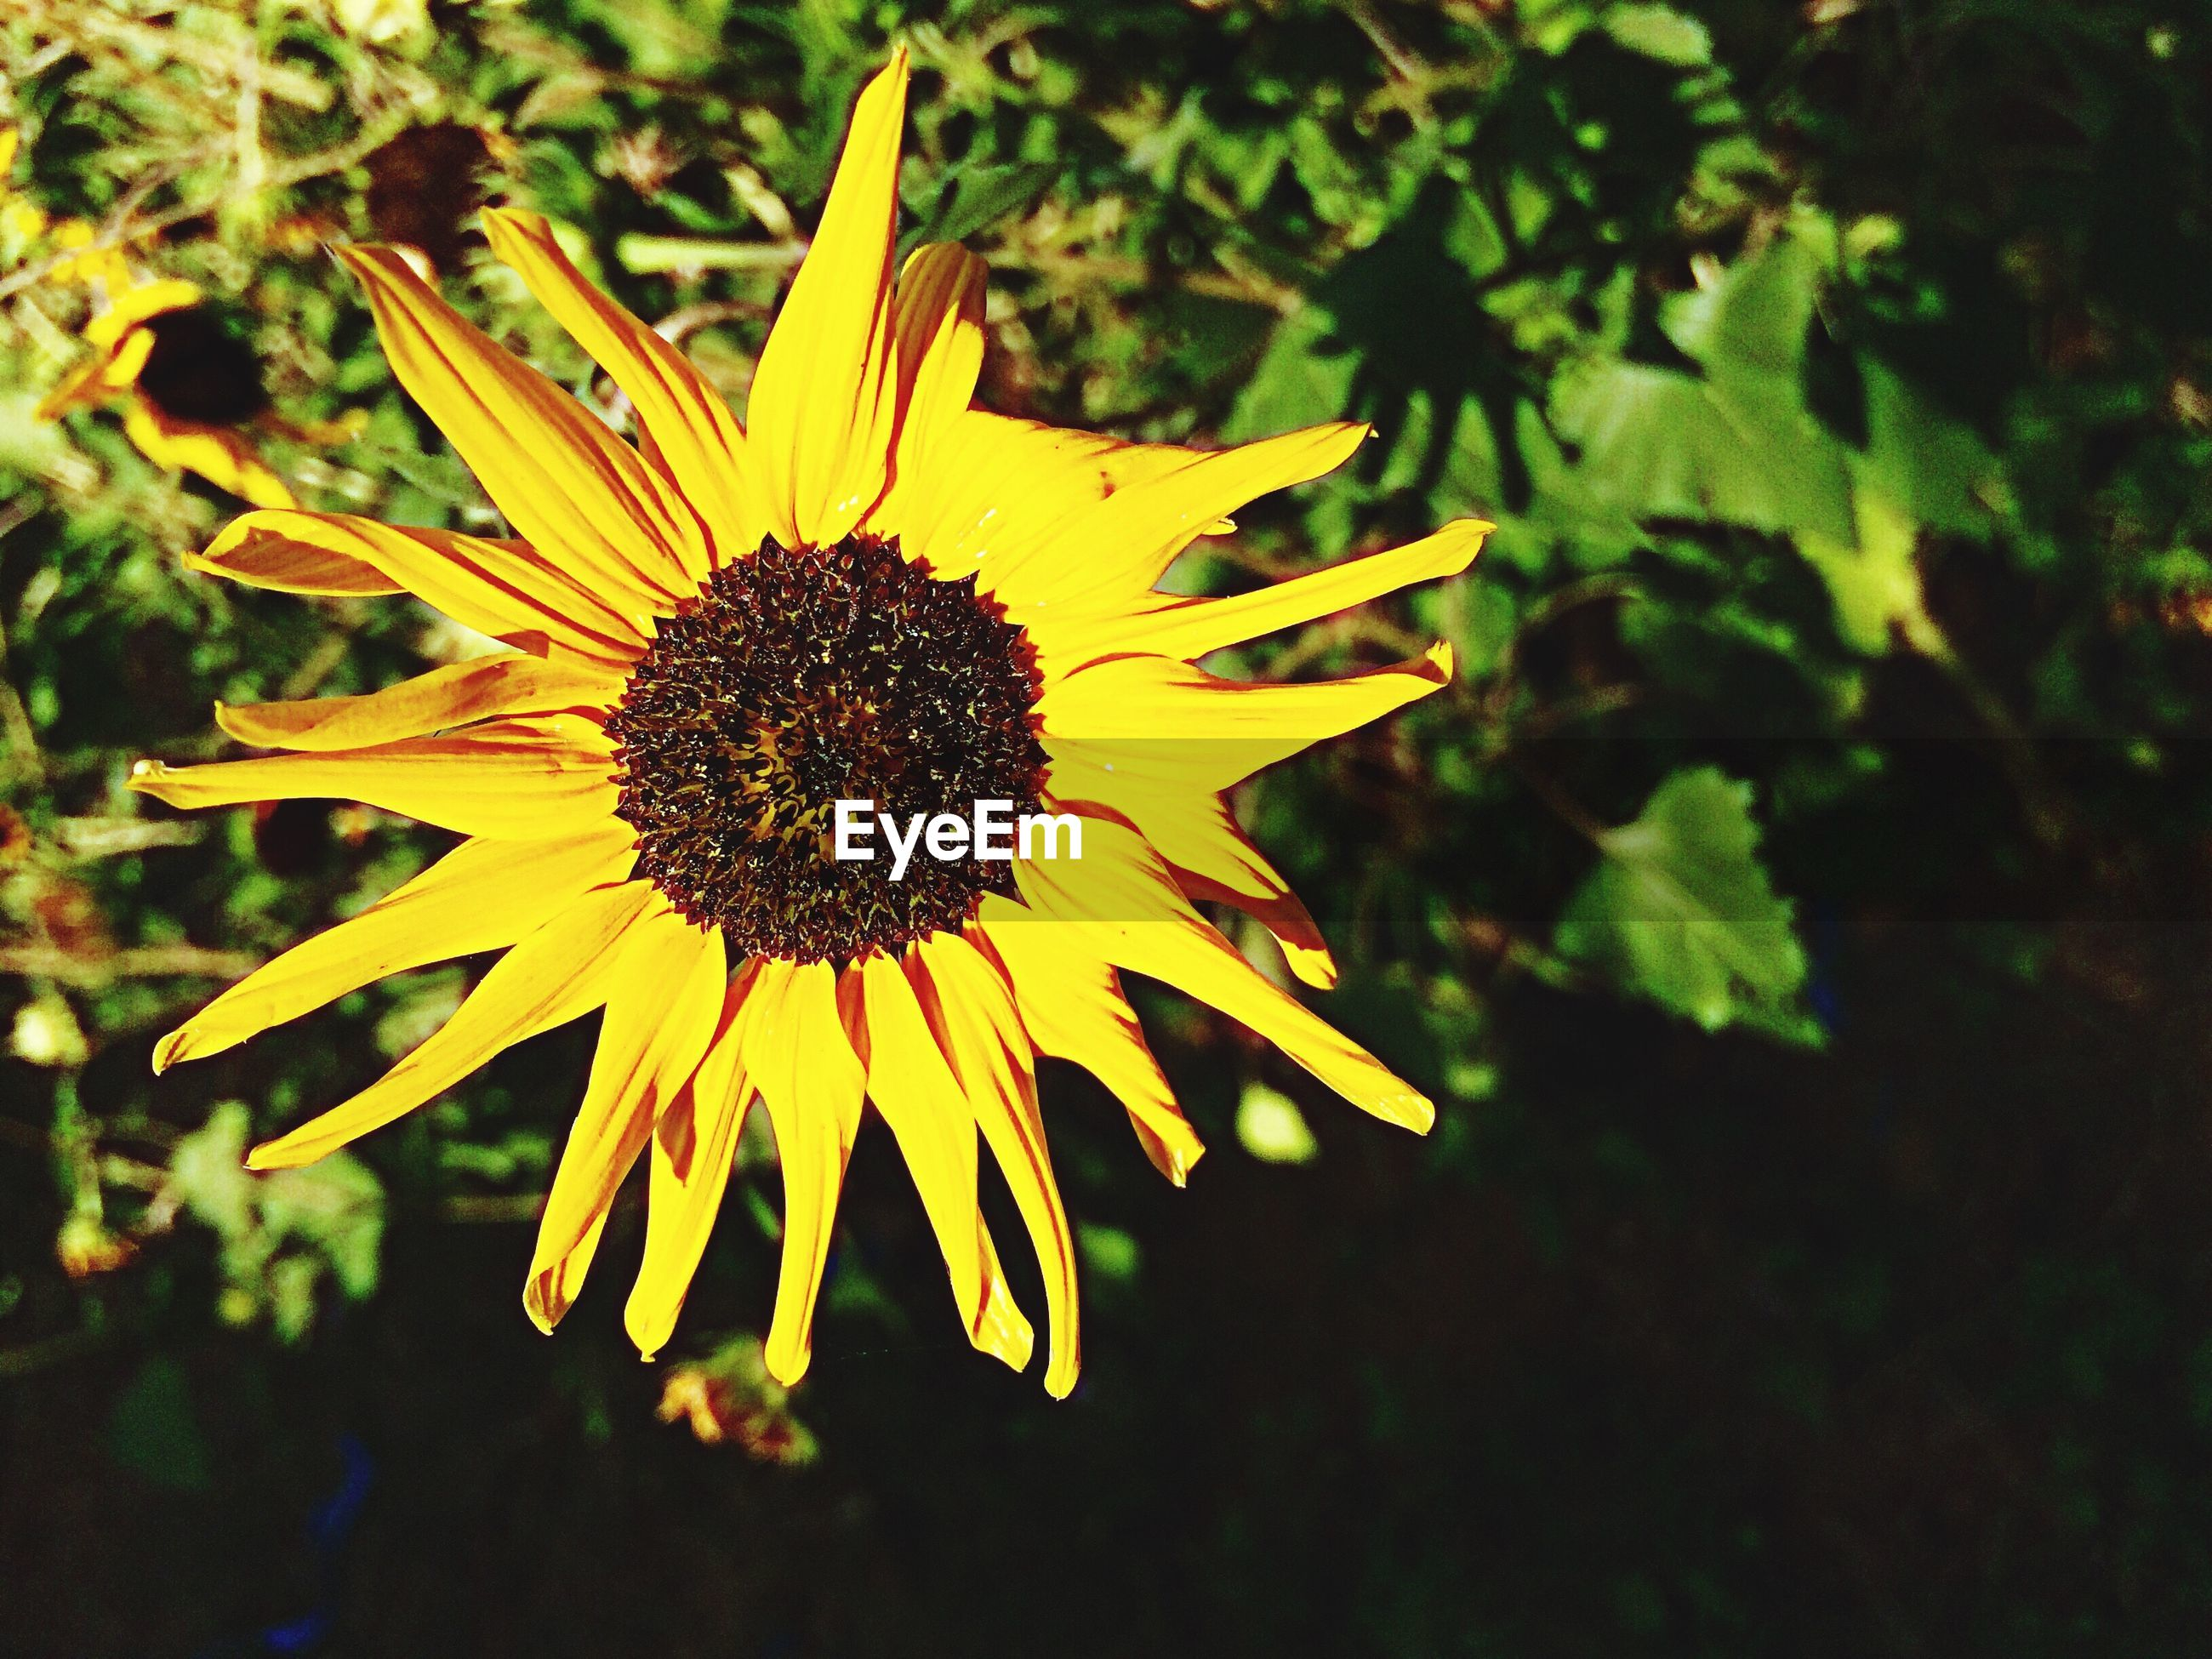 growth, flower, nature, yellow, beauty in nature, petal, fragility, plant, flower head, outdoors, no people, close-up, day, freshness